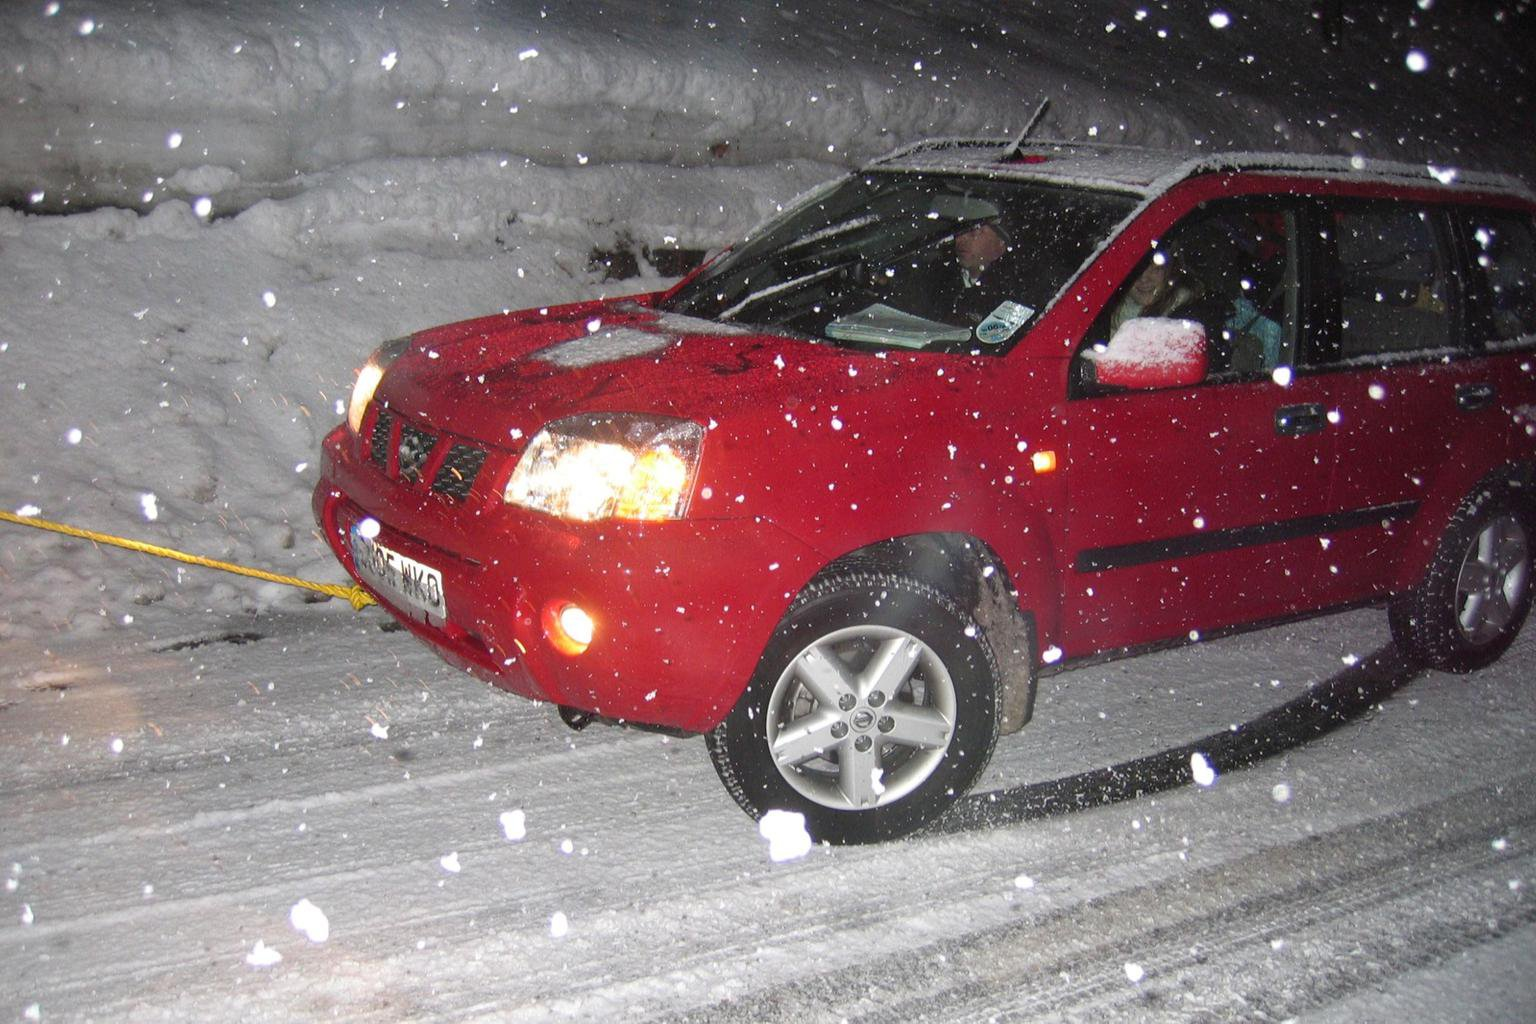 Driving in snow and ice this winter